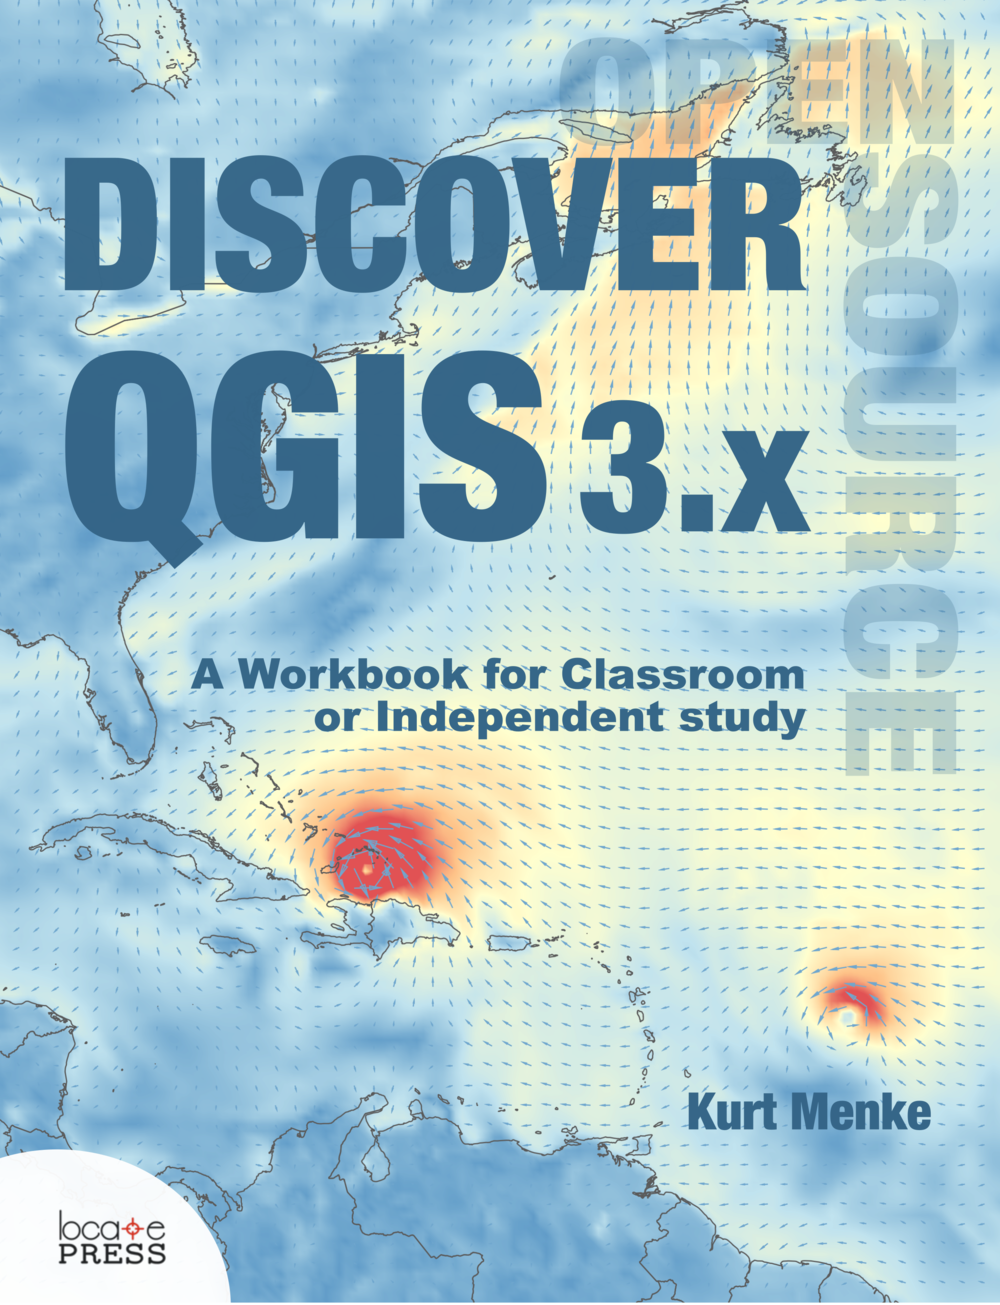 Discover QGIS 3.x -Spring 2019 - Updated for QGIS 3.6 (long-term release)A workbook for classroom or independent studyLab exercises based on the GeoAcademyData, Discussion questions & Solution files includedChallenge exercisesLearn enhanced workflows with QGIS 3.xCovers Spatial analysis, Data management & CartographyNew section - Advanced Data VisualizationBlending modes | Live layer effects | Expression-based symbology | Geometry generators | Time Manager | 3D | Mesh dataAvailable in Print and e-Book400 pages$35https://locatepress.com/books